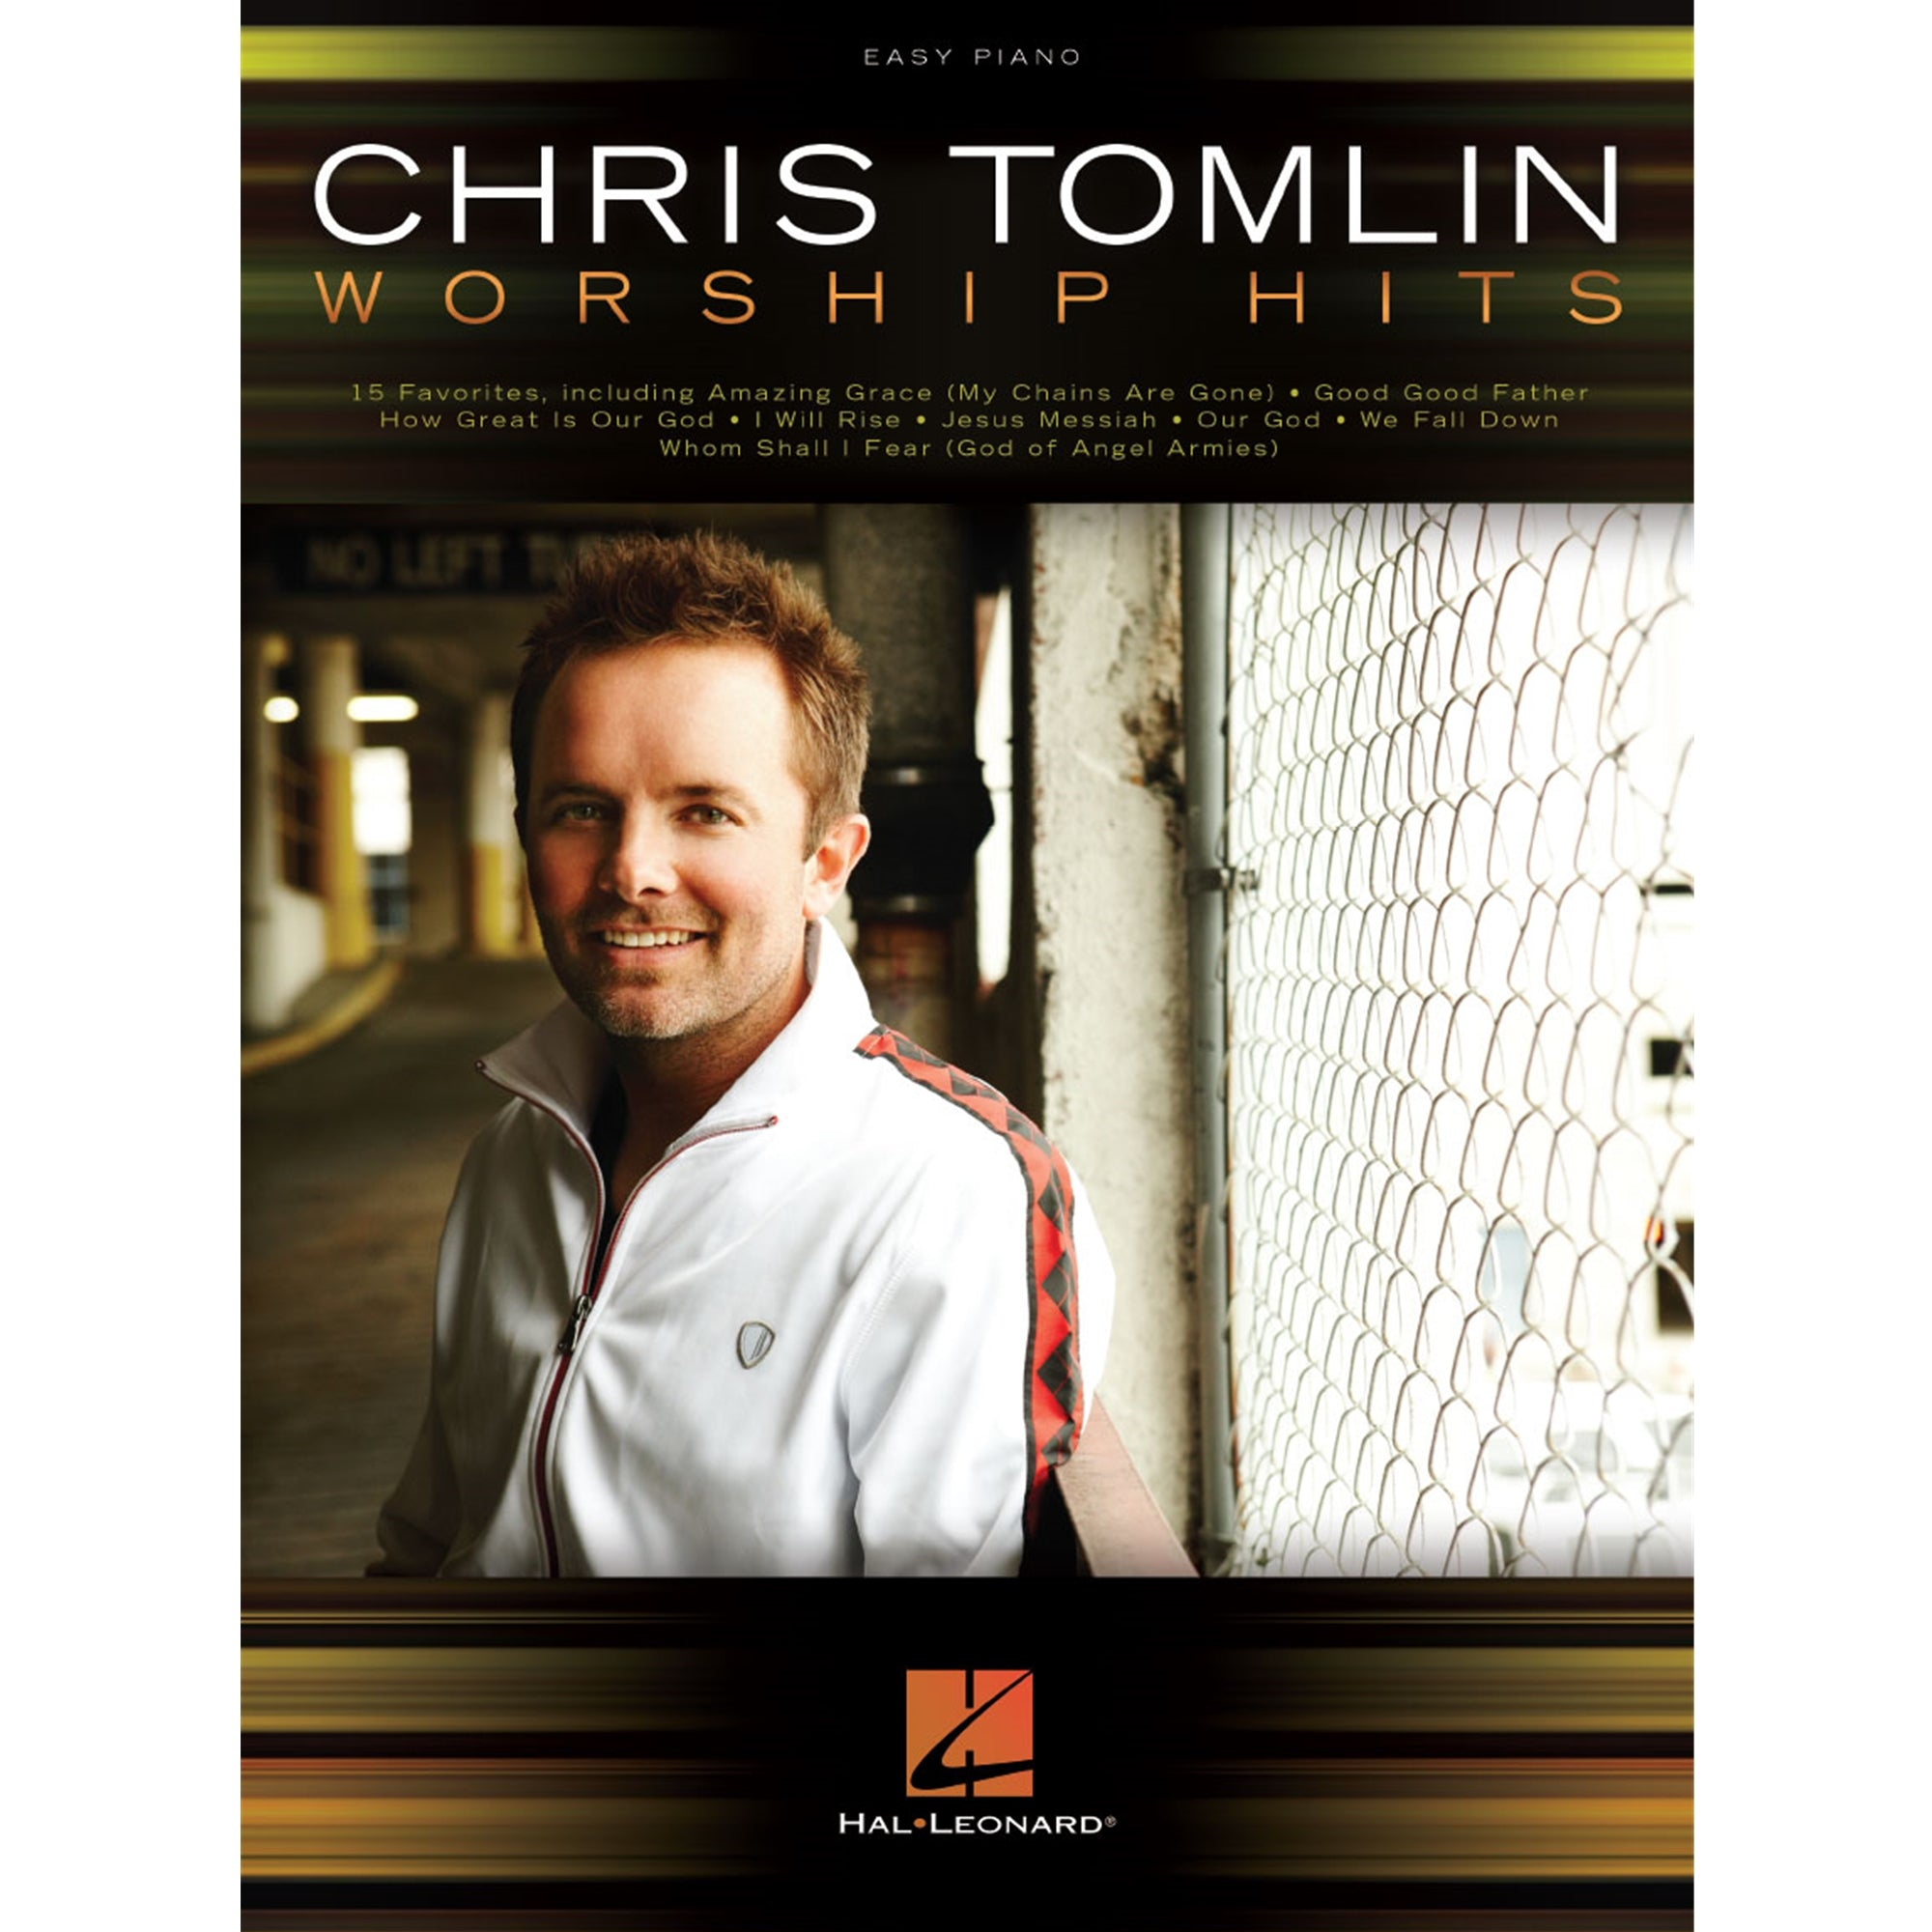 HAL LEONARD 192469 Chris Tomlin - Worship Hits